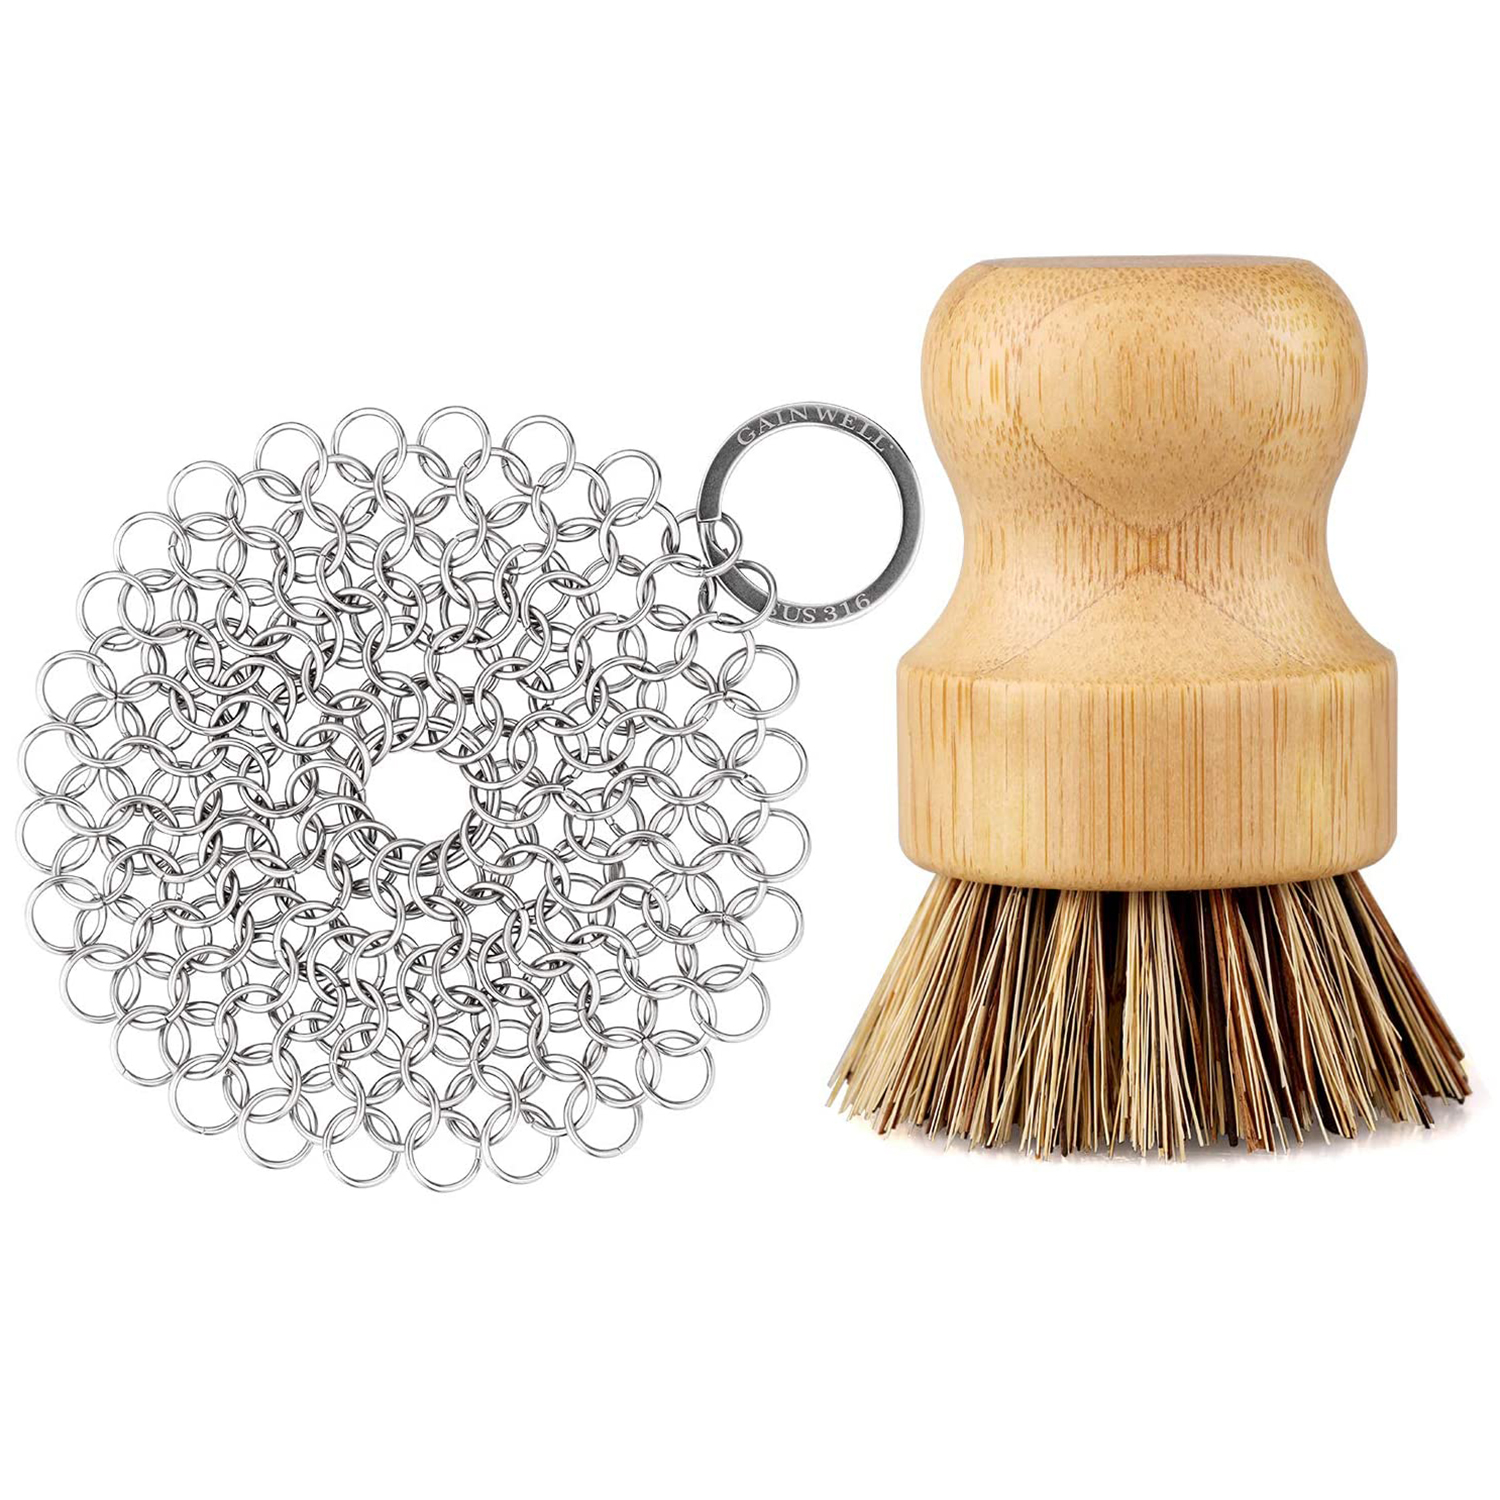 GAINWELL Stainless Steel Chainmail Scrubber Set Cast Iron Cleaner